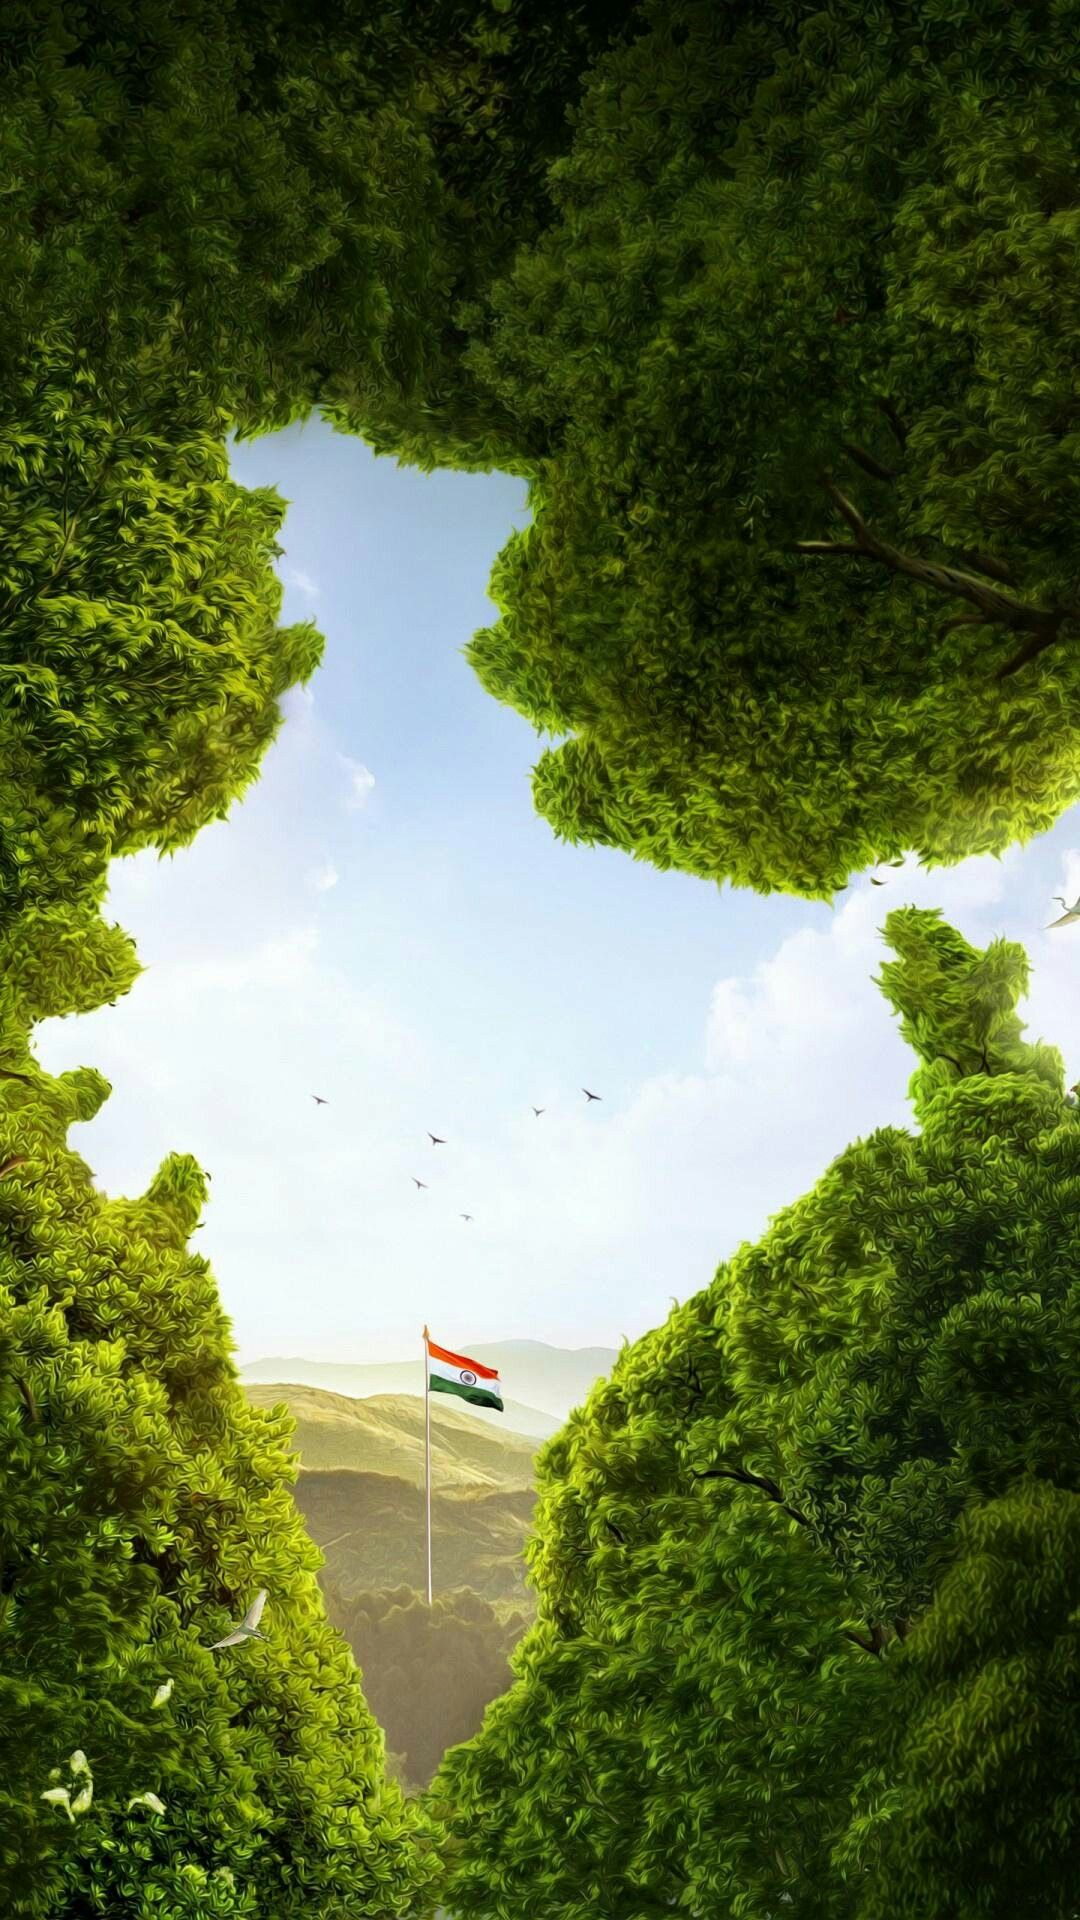 Pin By Alone On Black Wallpaper Indian Flag Wallpaper Indian Flag Images Republic Day India